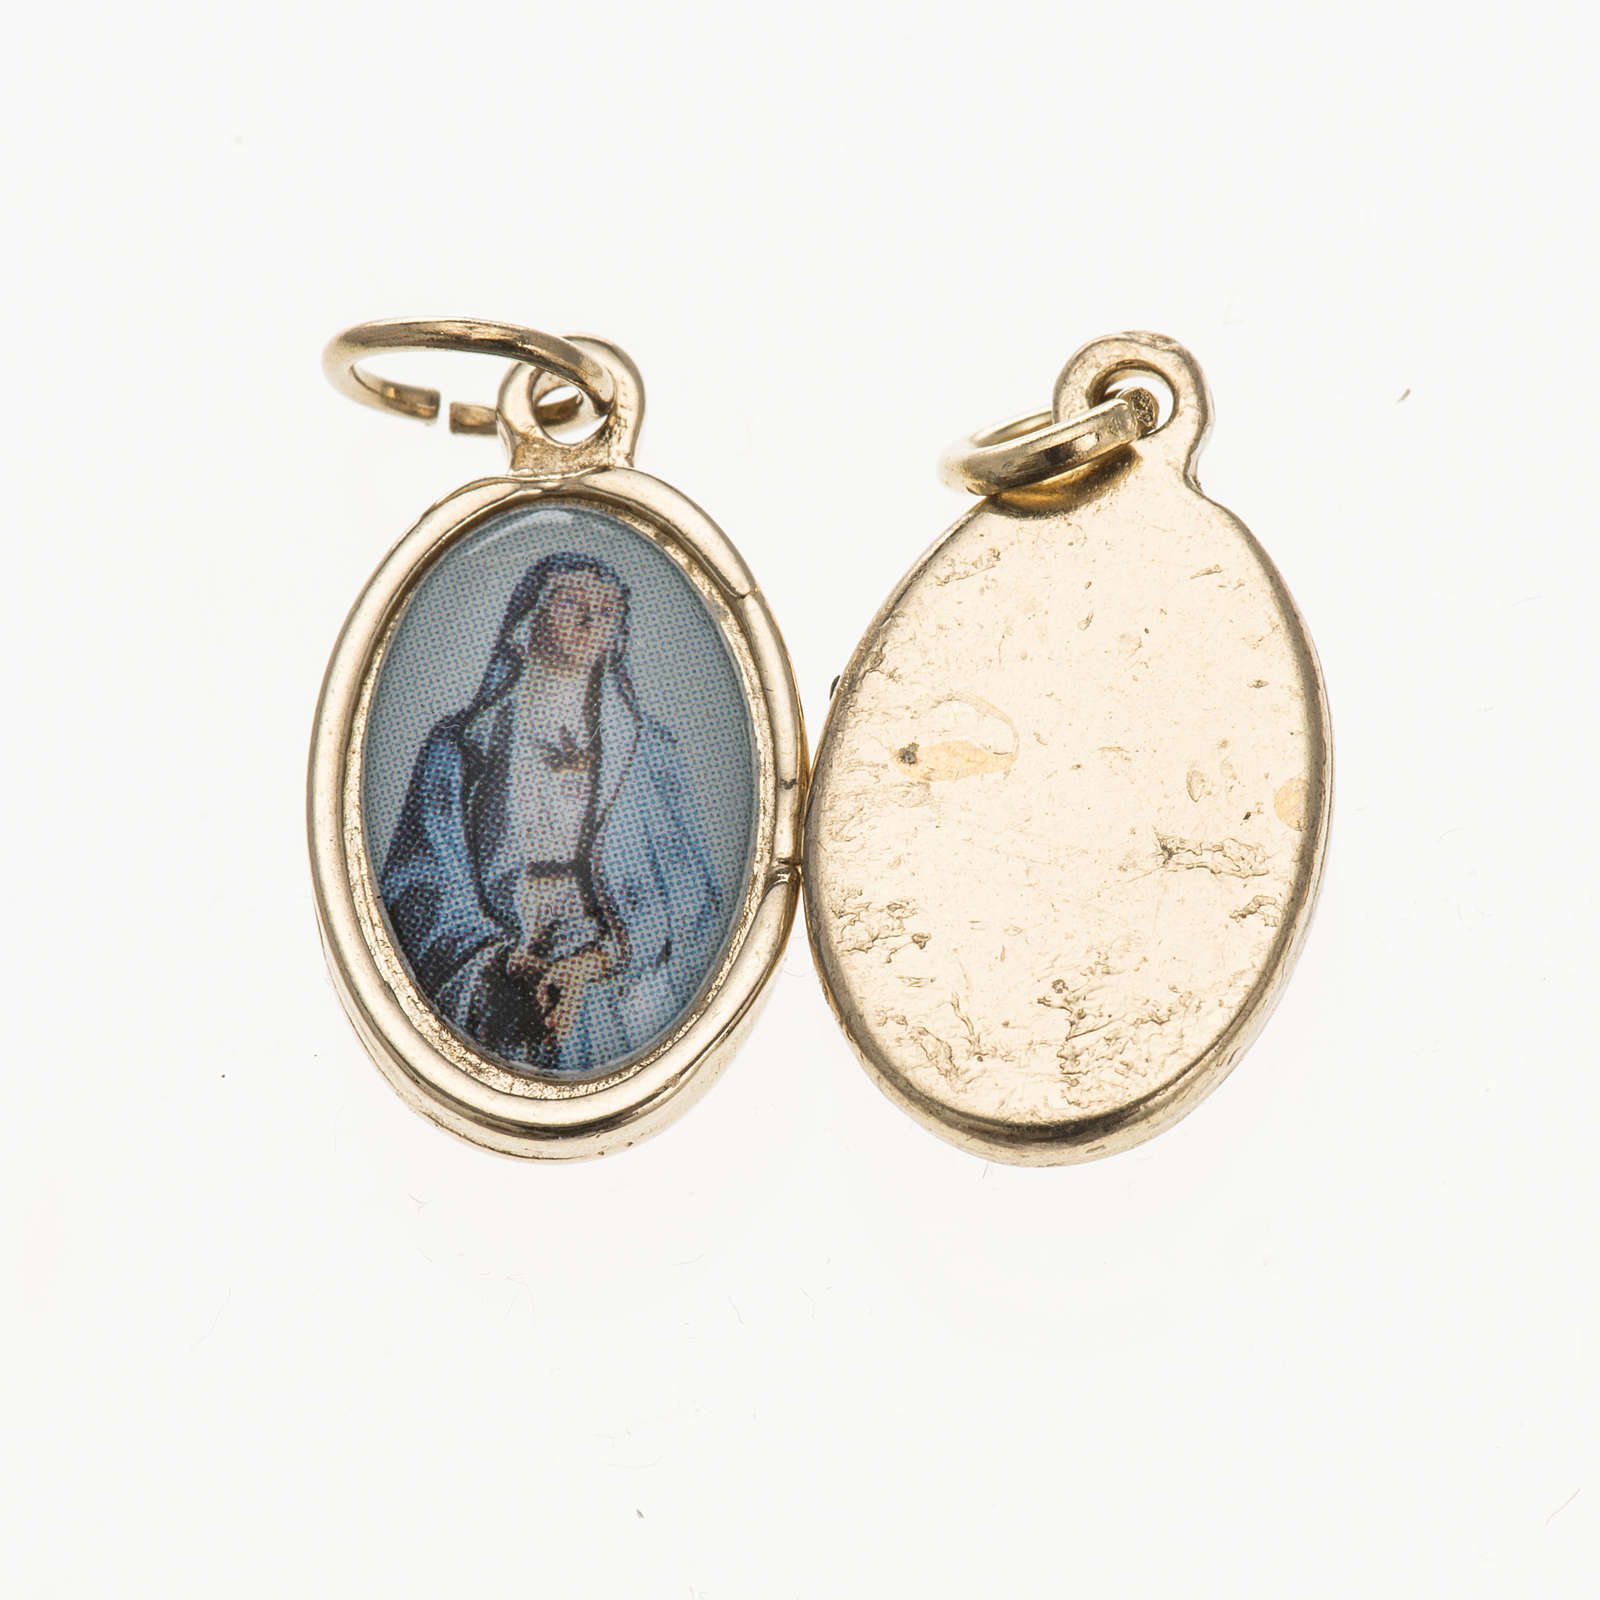 Medal in golden metal, resin Our Lady of Sorrows 1.5x1cm 4